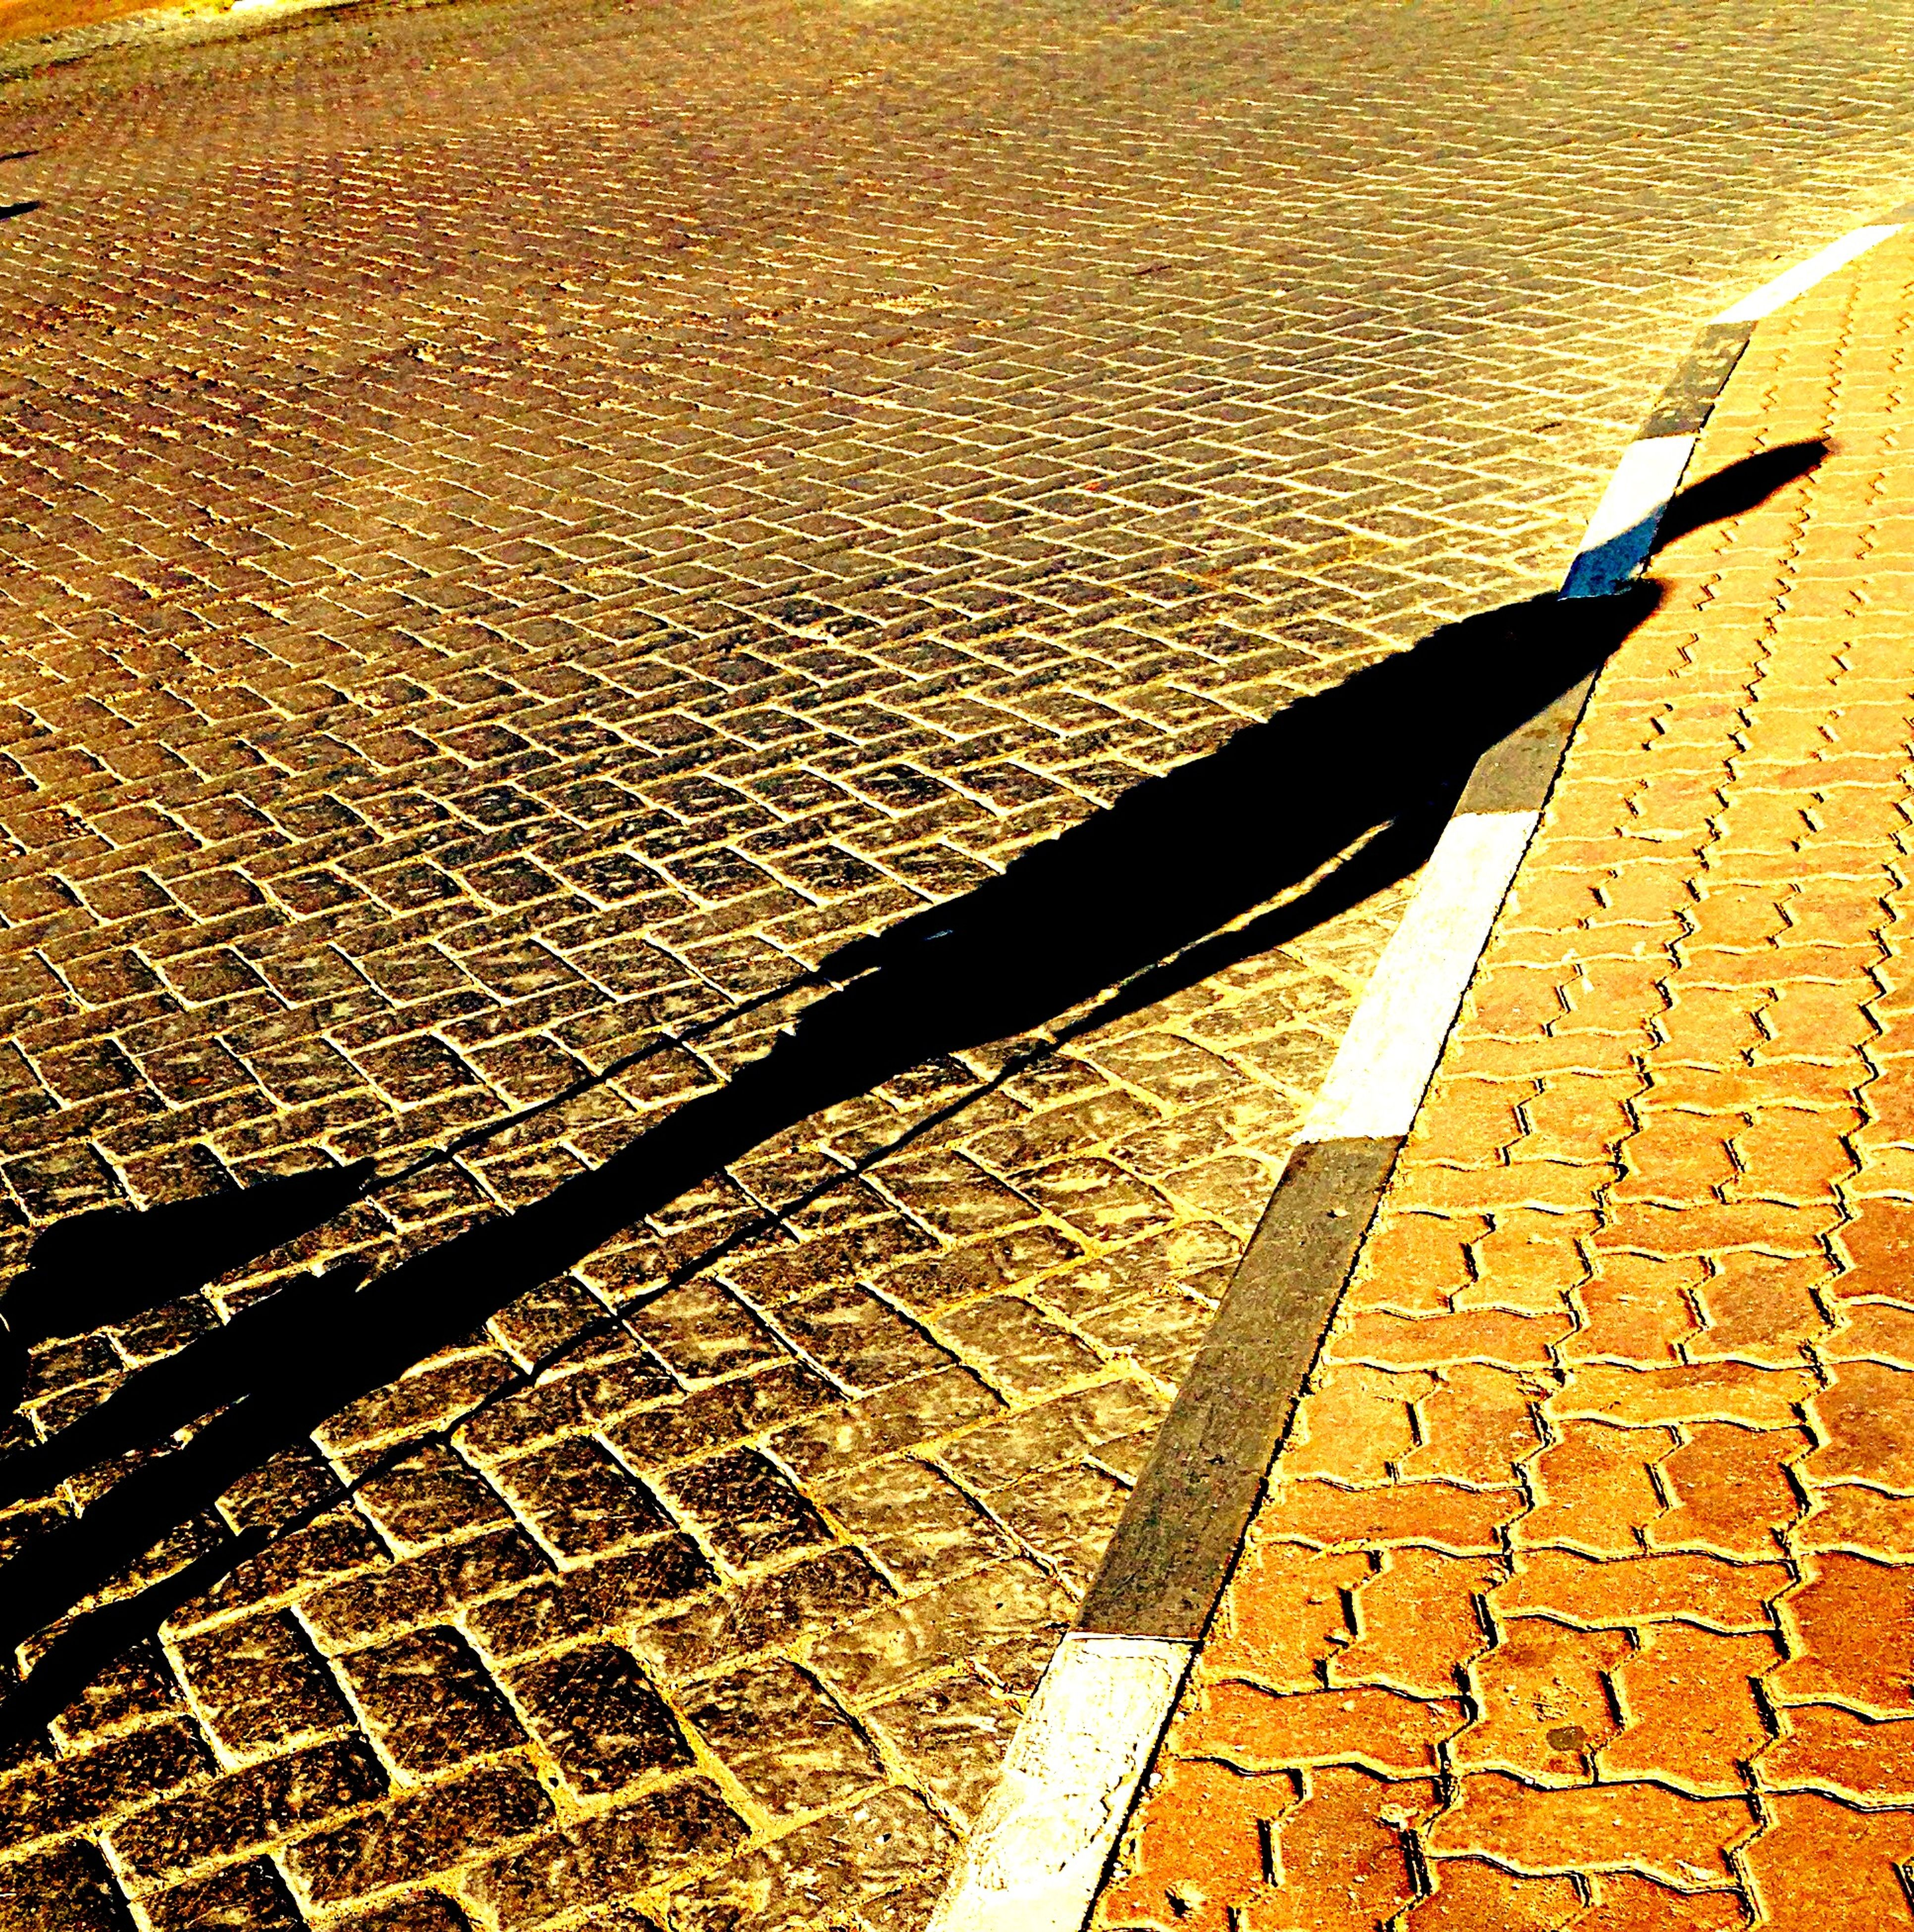 shadow, high angle view, sunlight, street, the way forward, outdoors, road, day, no people, sand, cobblestone, paving stone, transportation, asphalt, footpath, nature, sidewalk, road marking, sunny, focus on shadow